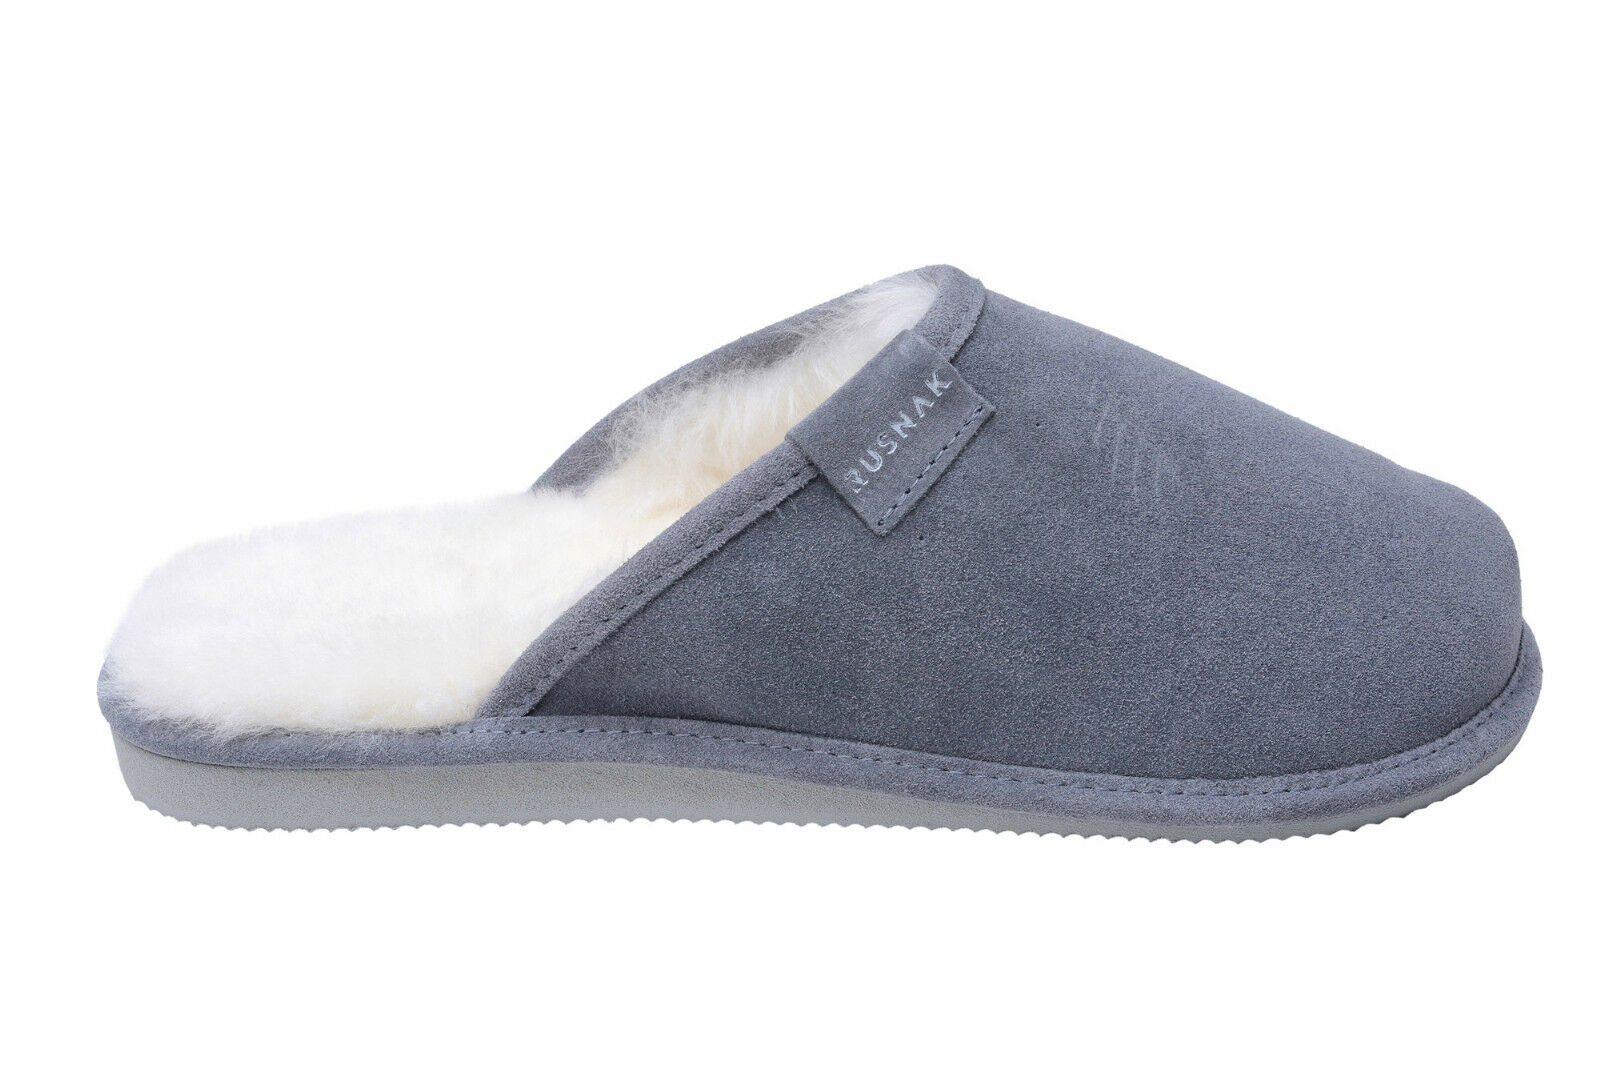 New Womens Sheepskin Mule House Slippers Shoes Wool Lining UK Size 3 4 5 6 7 8